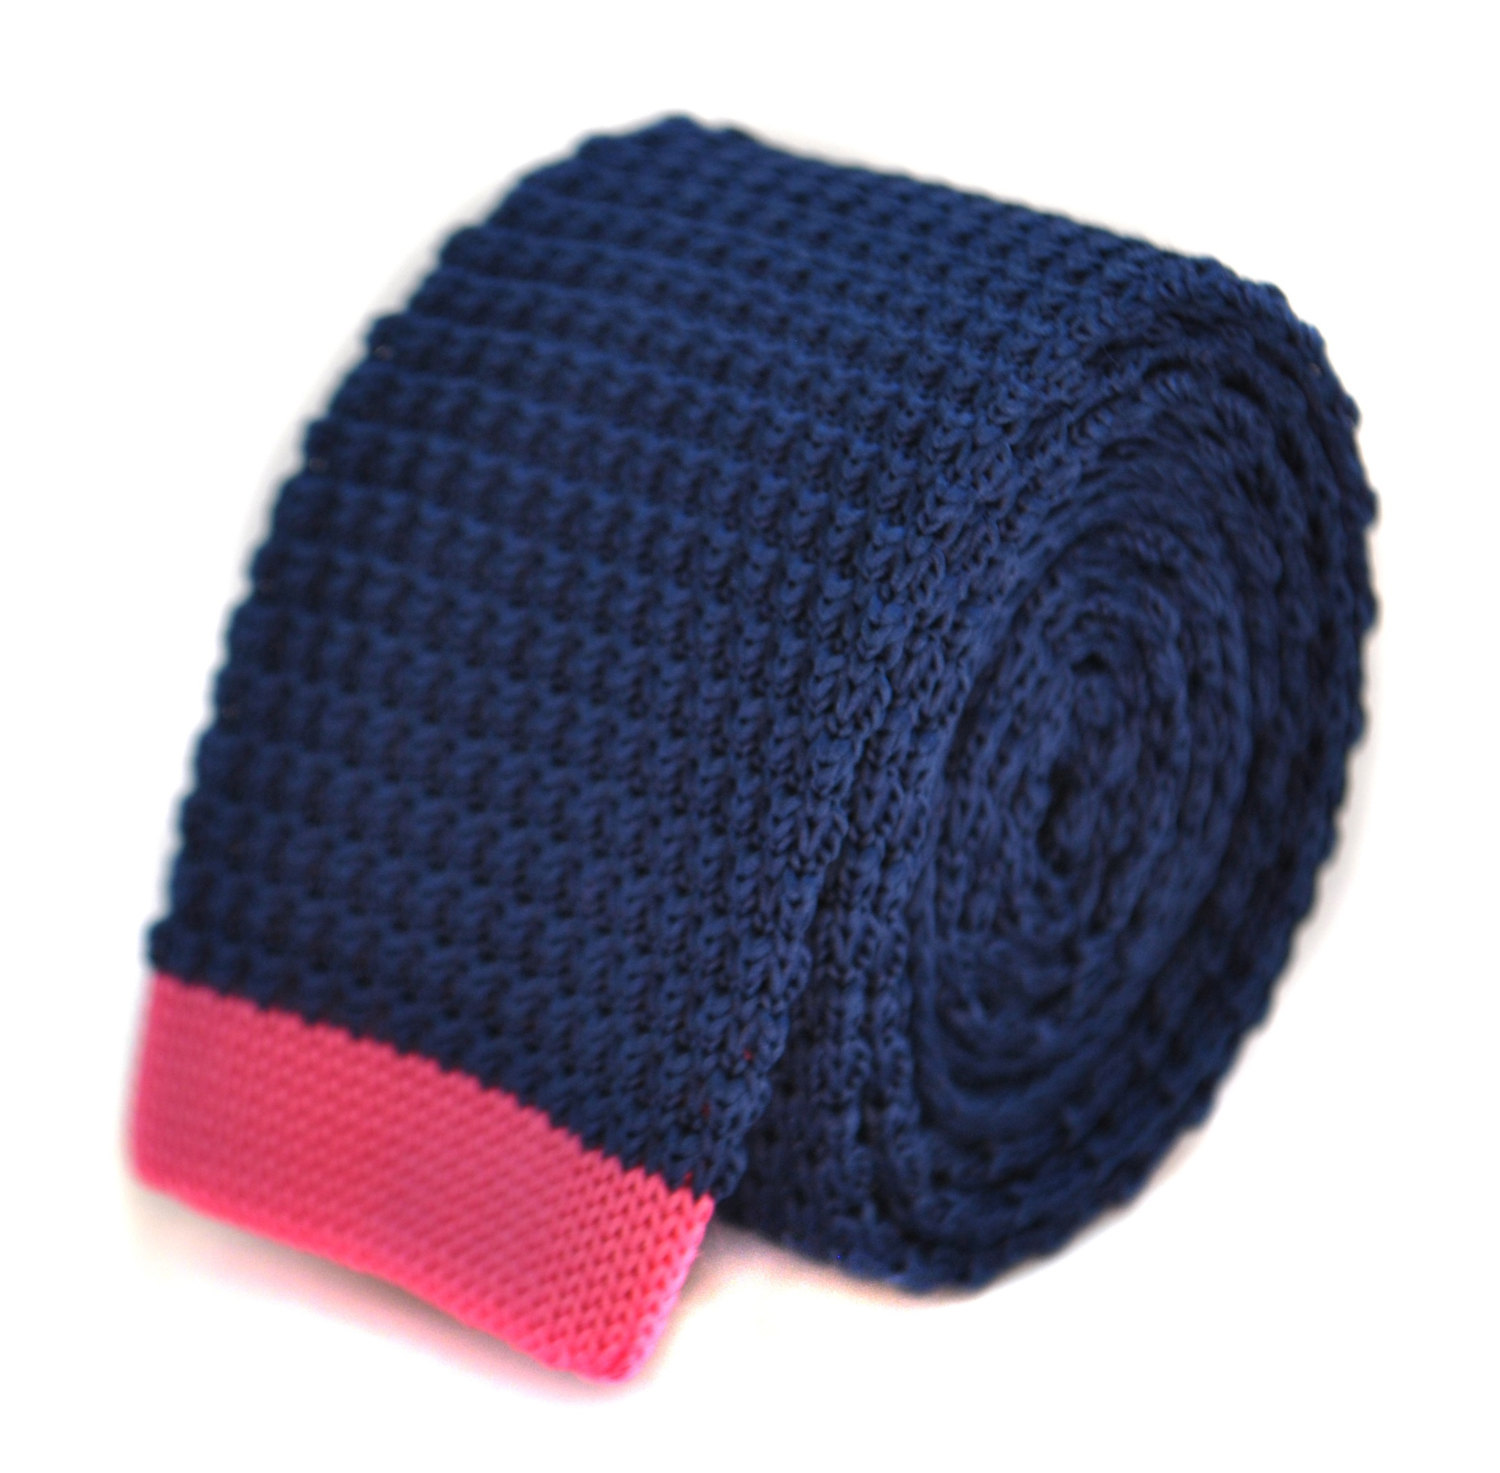 navy blue skinny knitted tie with bright pink tip by Frederick Thomas FT2020